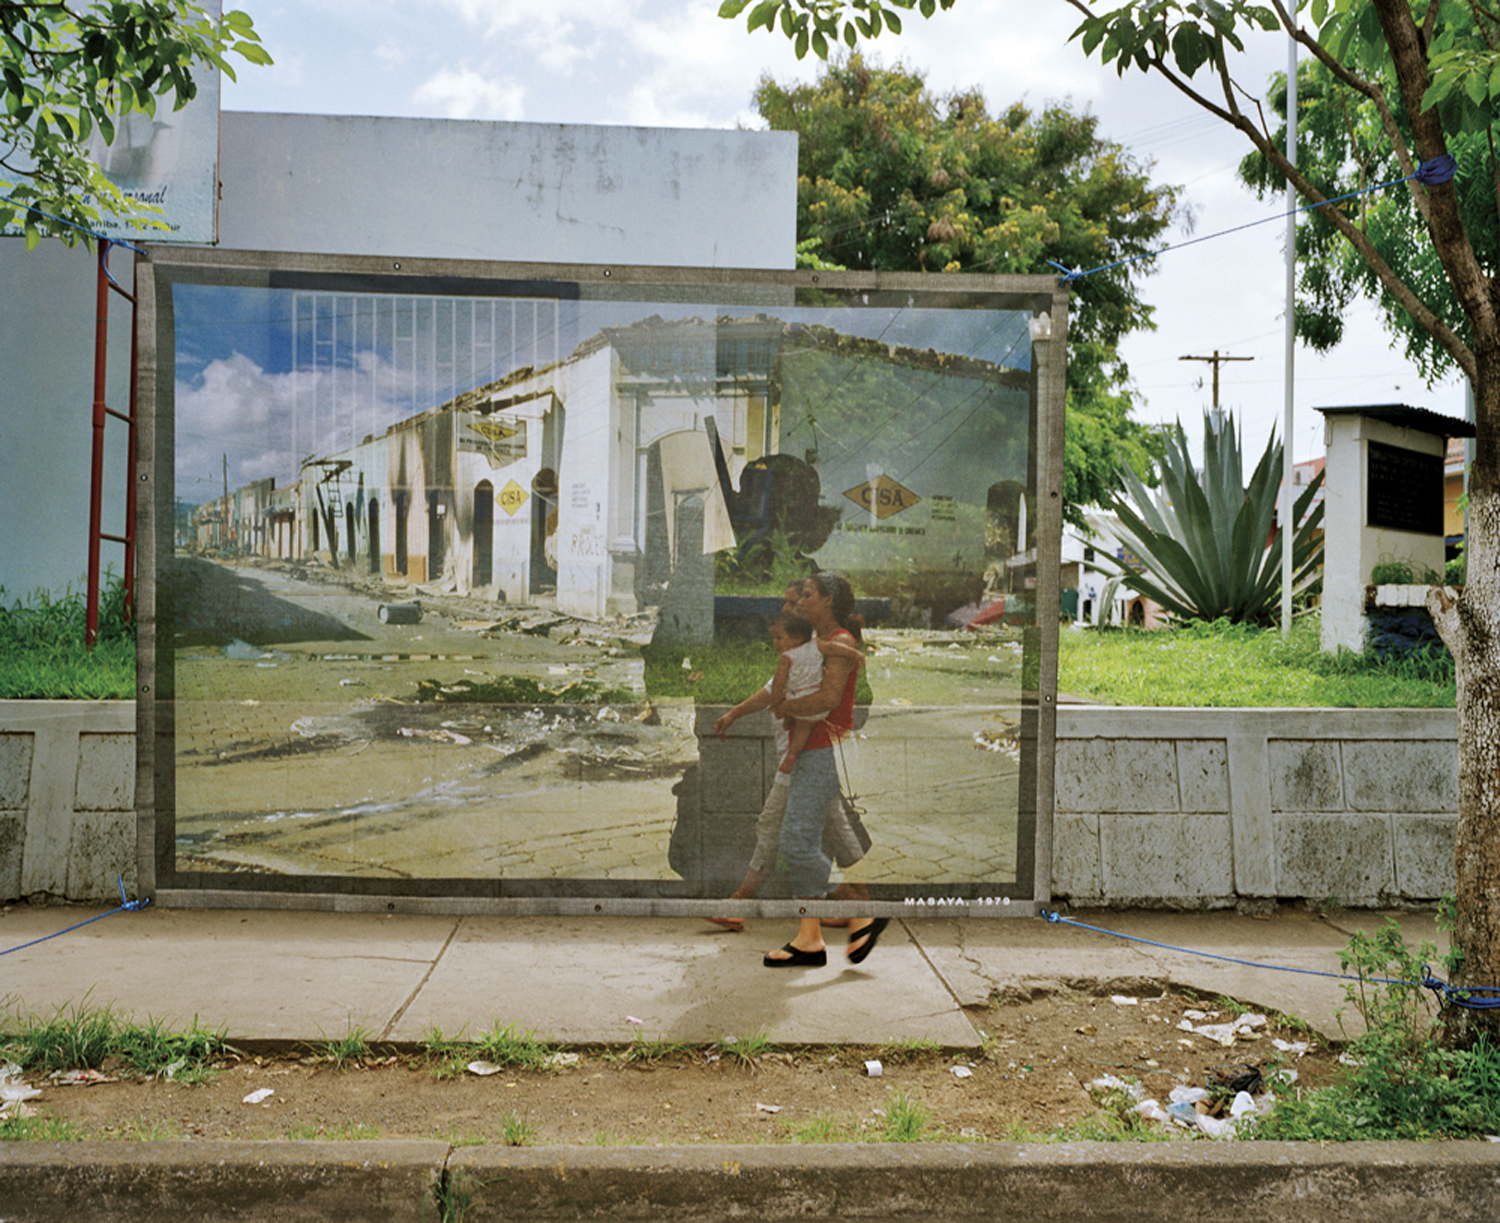 A mural in Masaya, Nicaragua, based on original photographs taken in 1978 during the popular insurrection against Somoza.